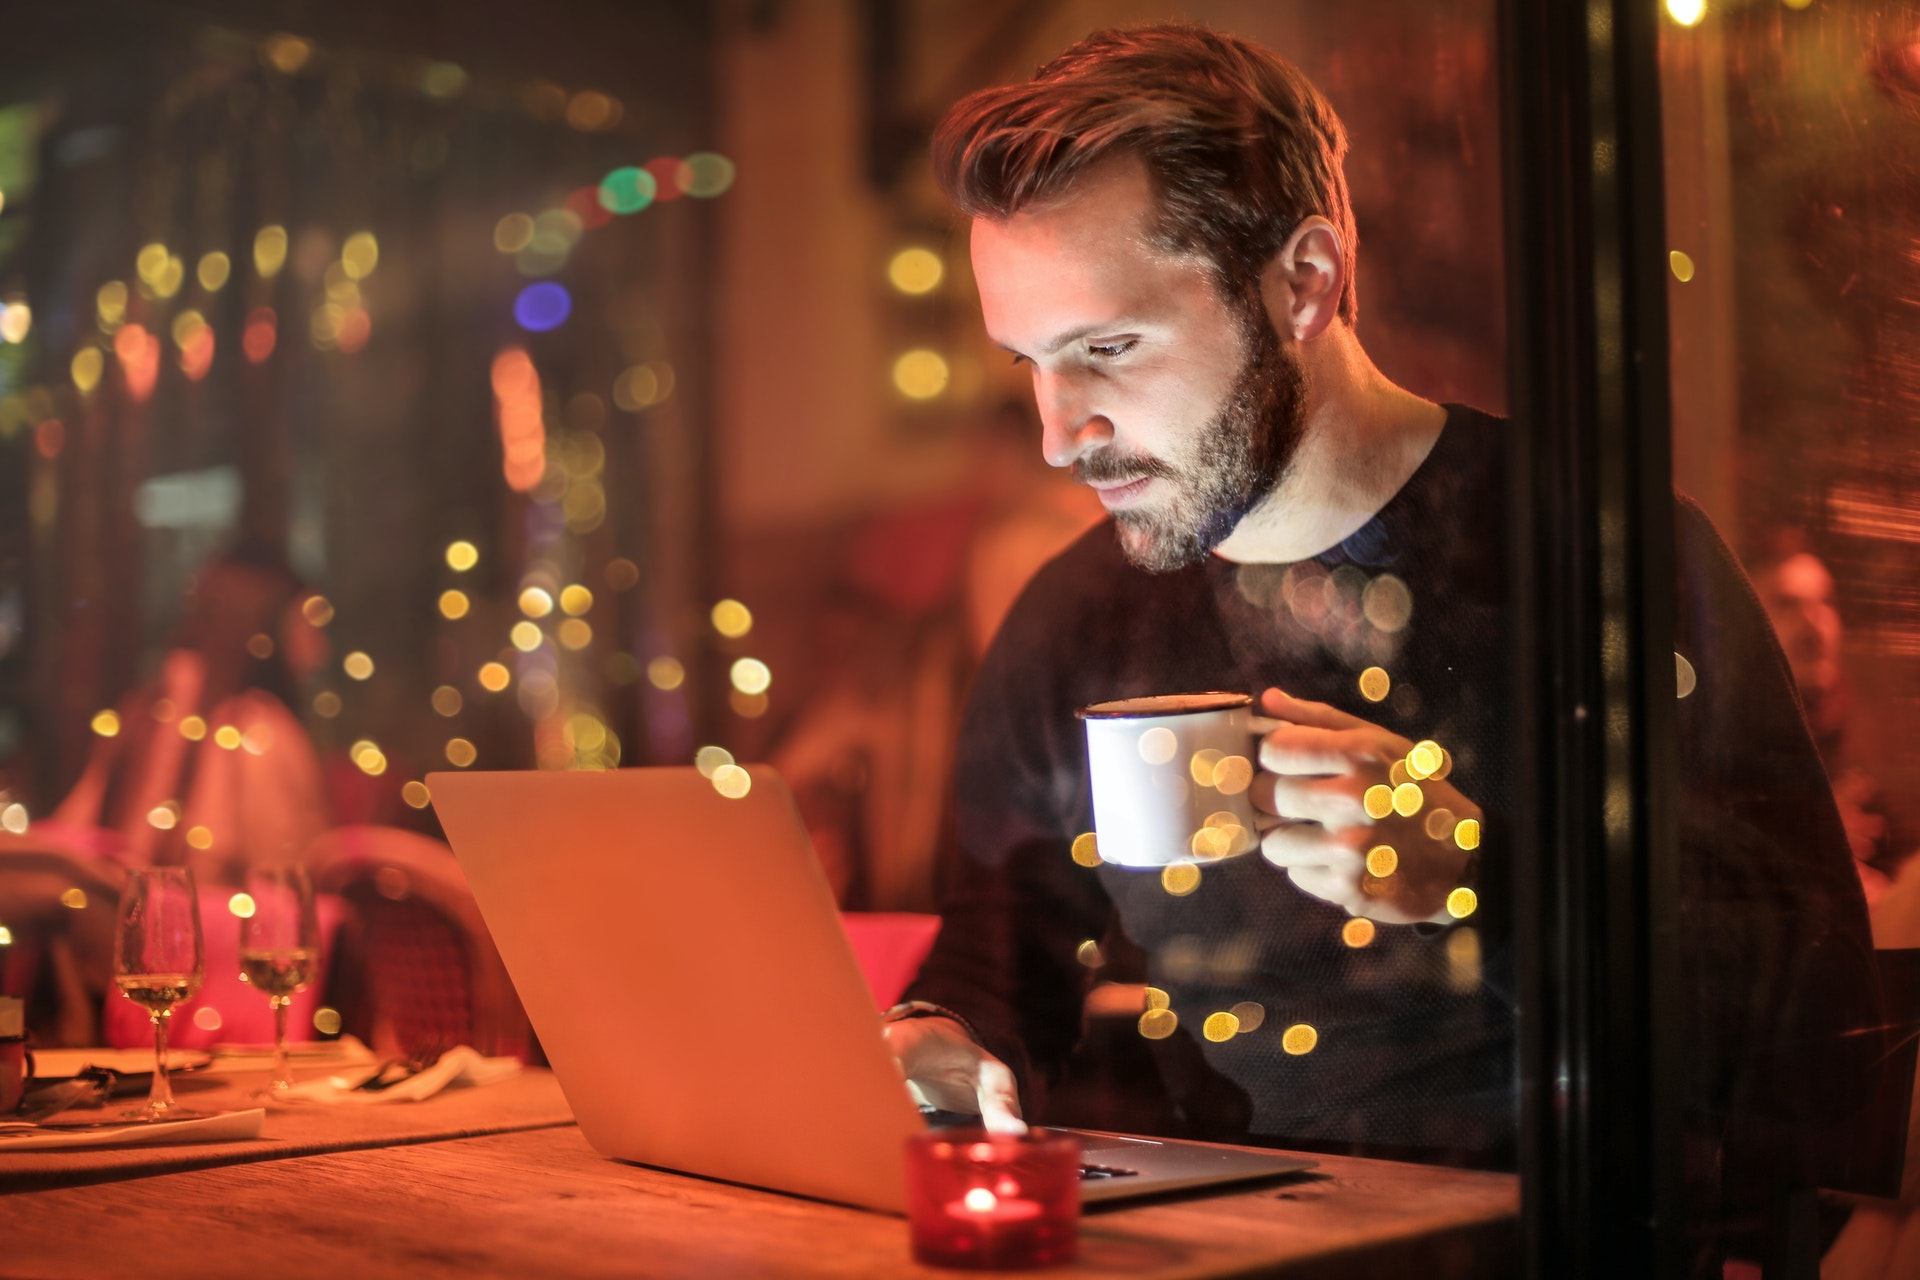 man working on laptop with coffee in hand at cafe